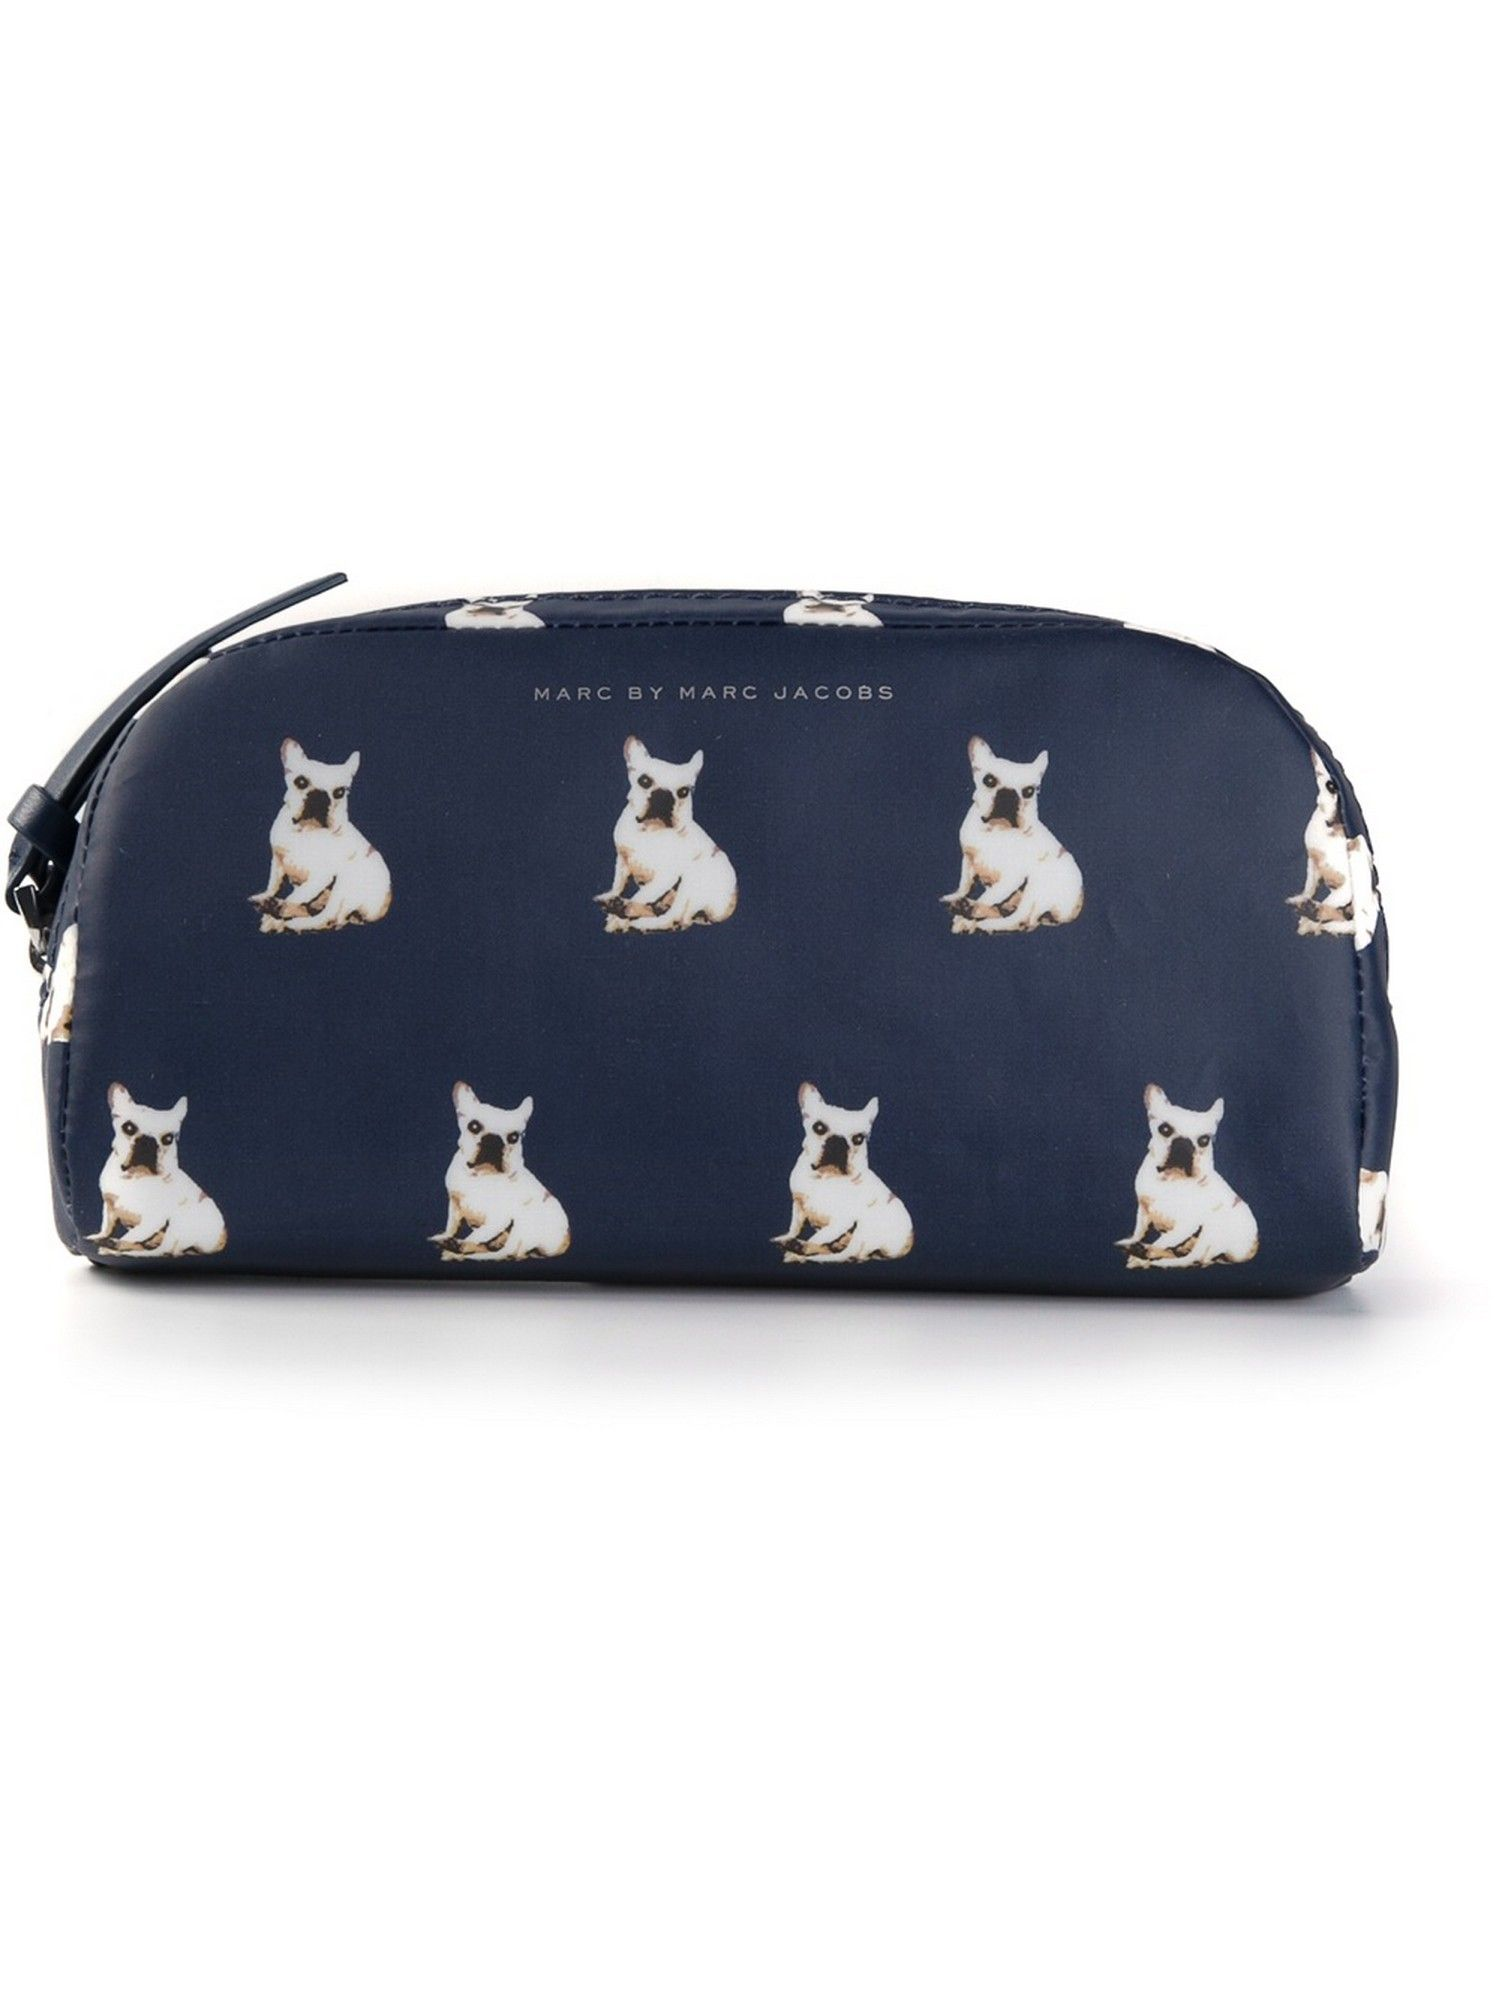 Neceser con bulldog - Marc By Marc Jacobs